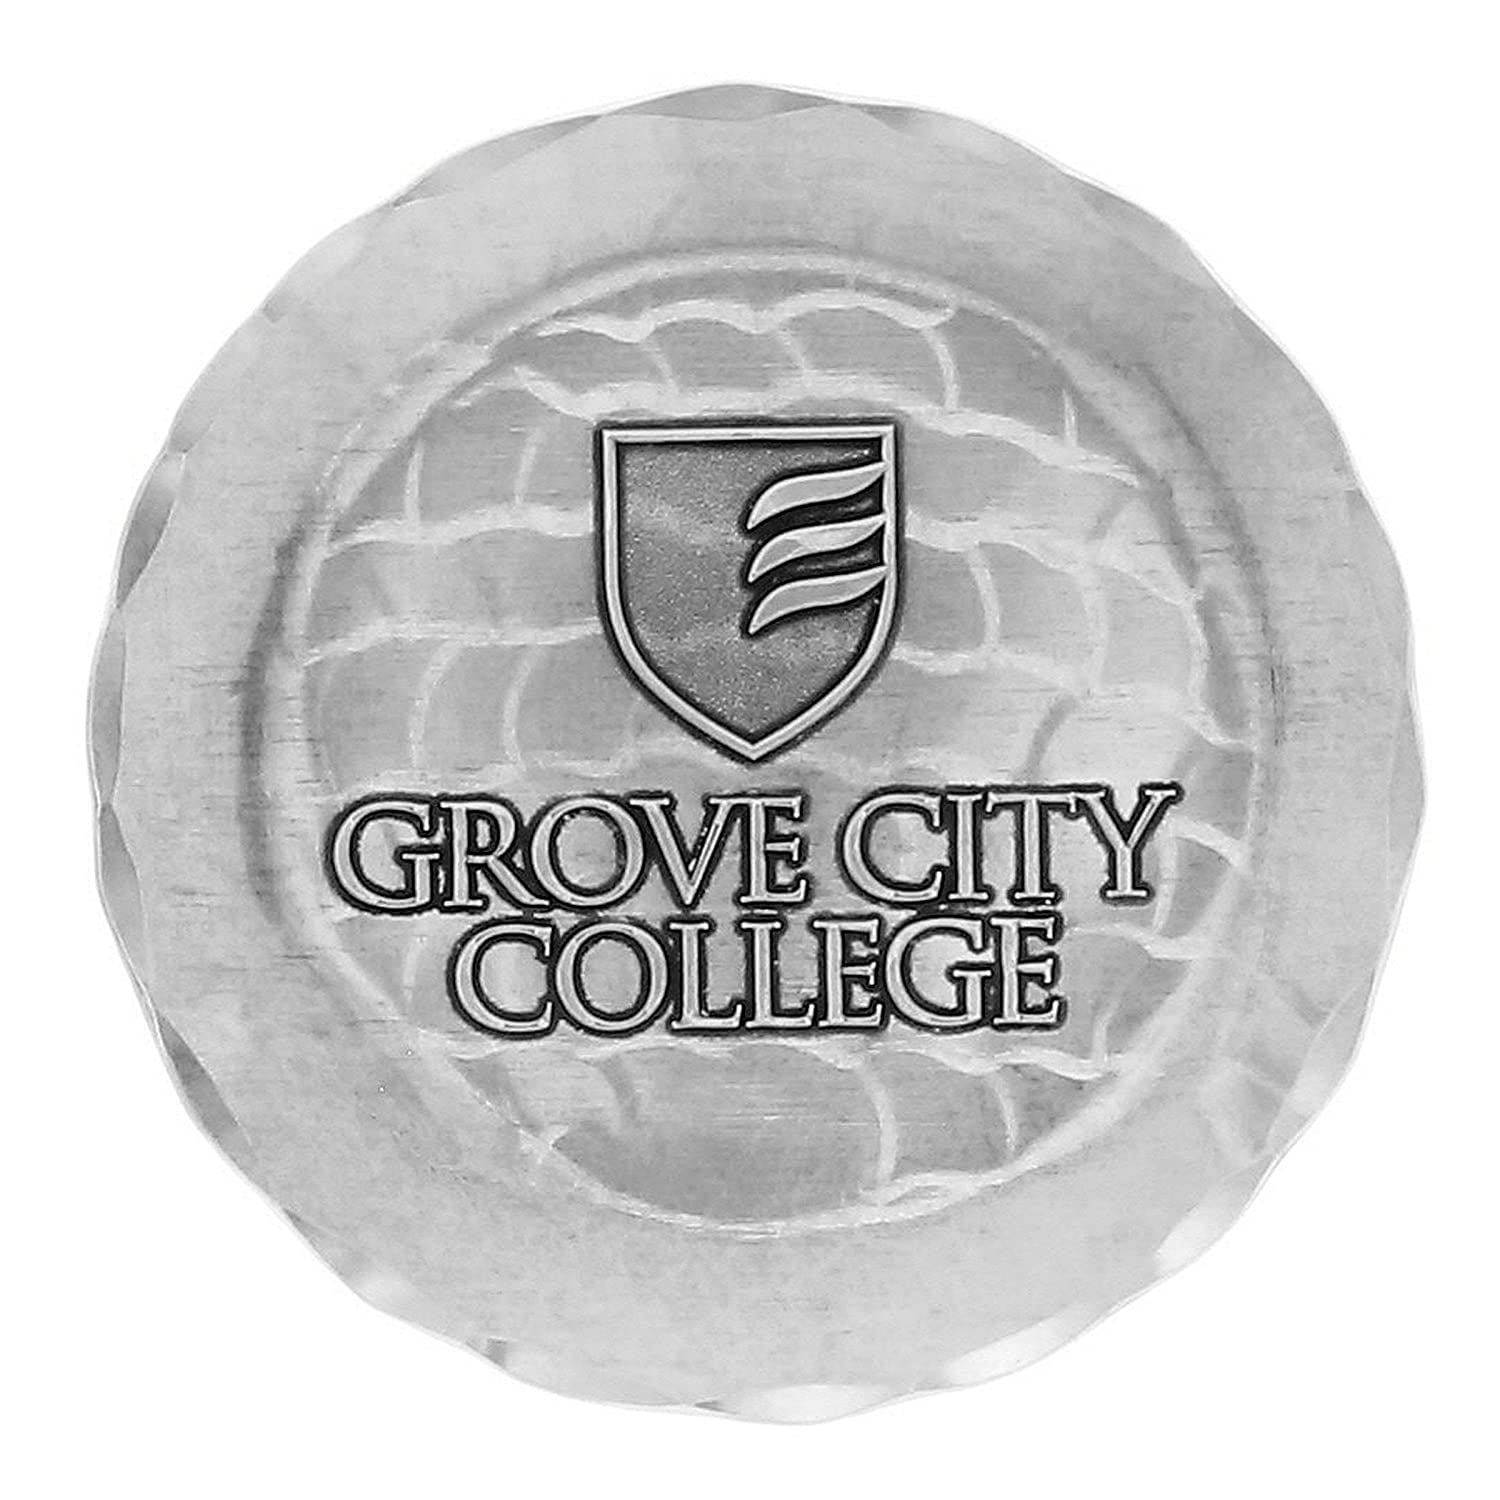 Carnegie Mellon College and University Coaster Wendell August Handcrafted Aluminum